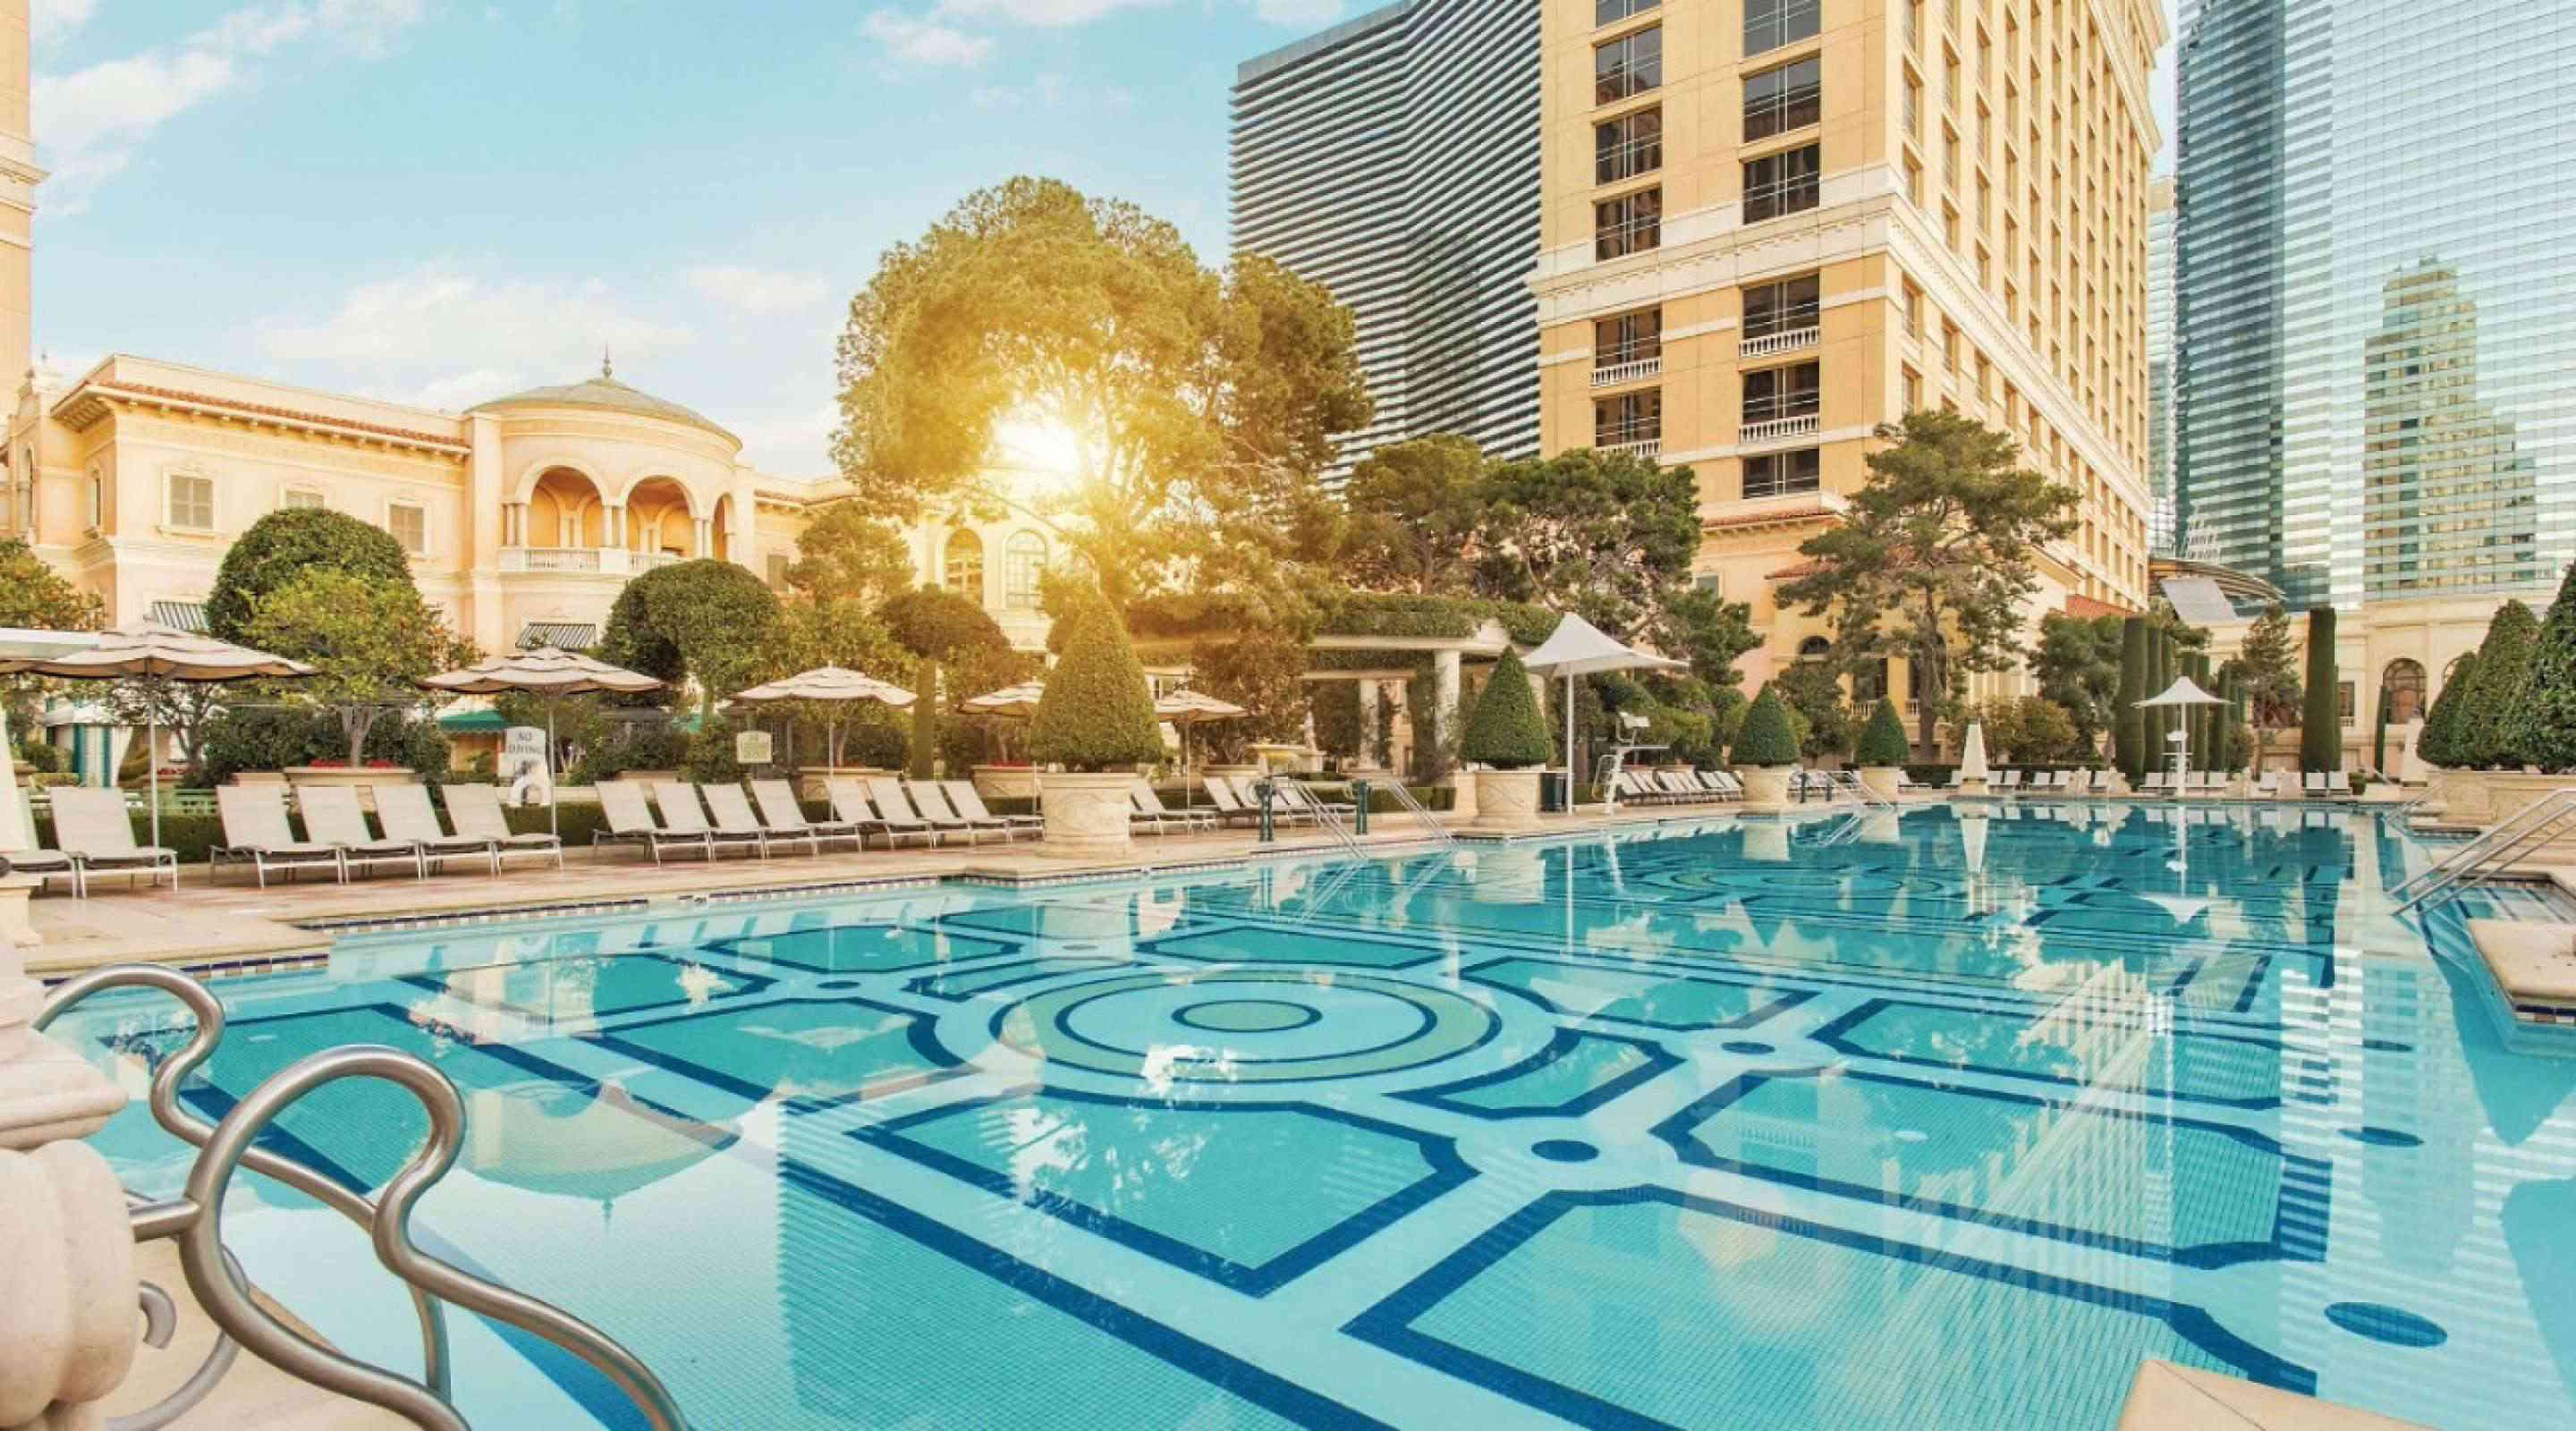 large empty pool at Bellagio Las Vegas with soft light